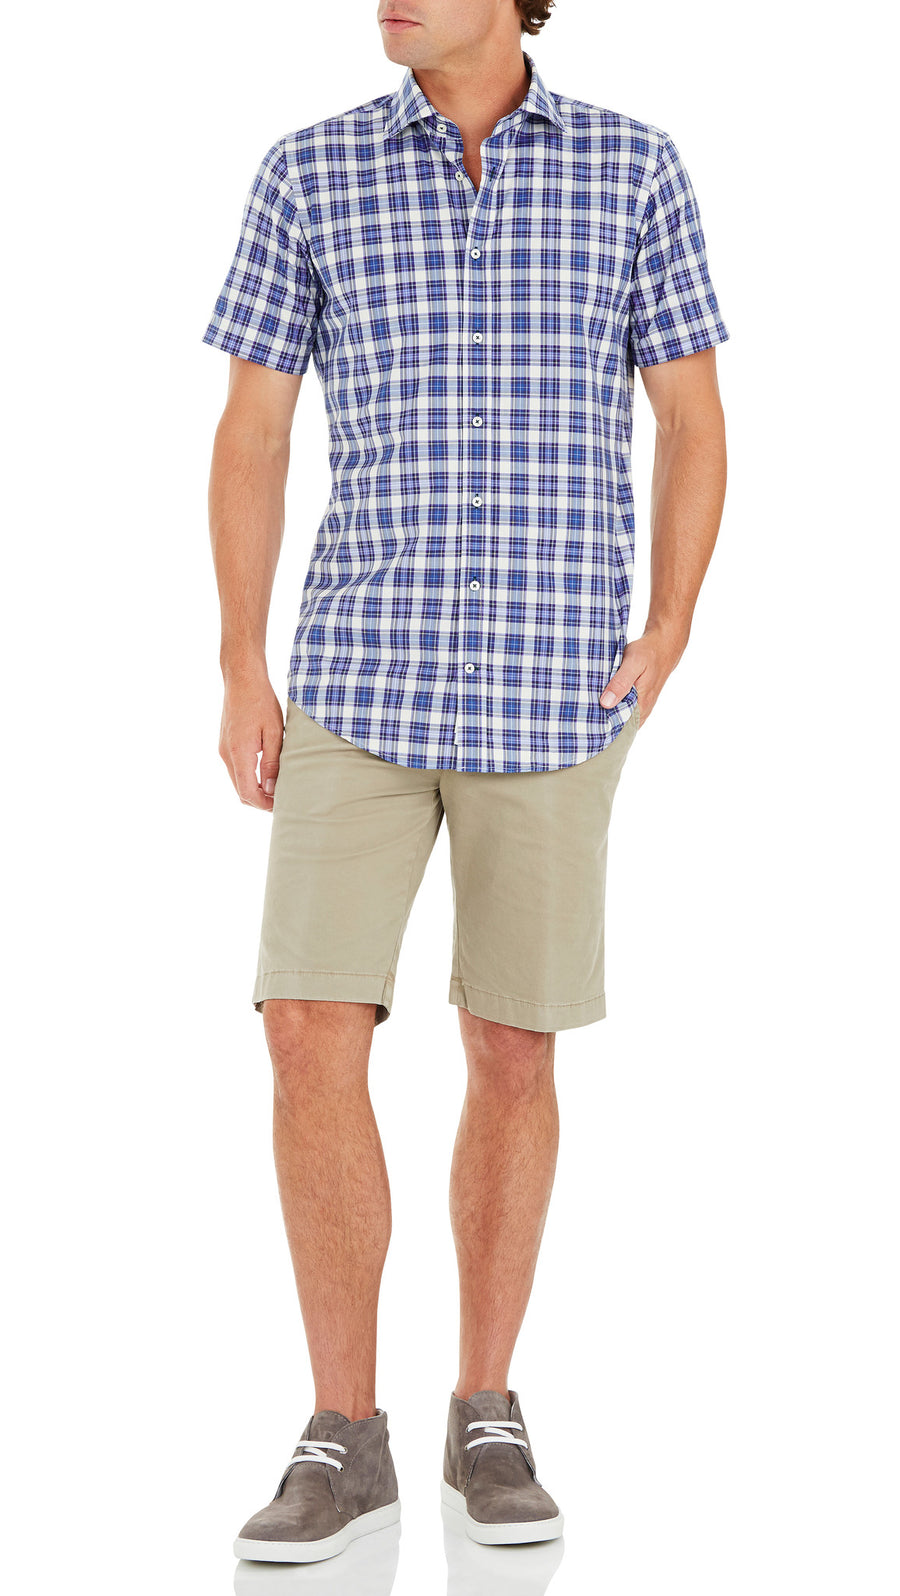 Bennett Signature Short Sleeve Shirt in Blue - Ron Bennett Menswear  - 1